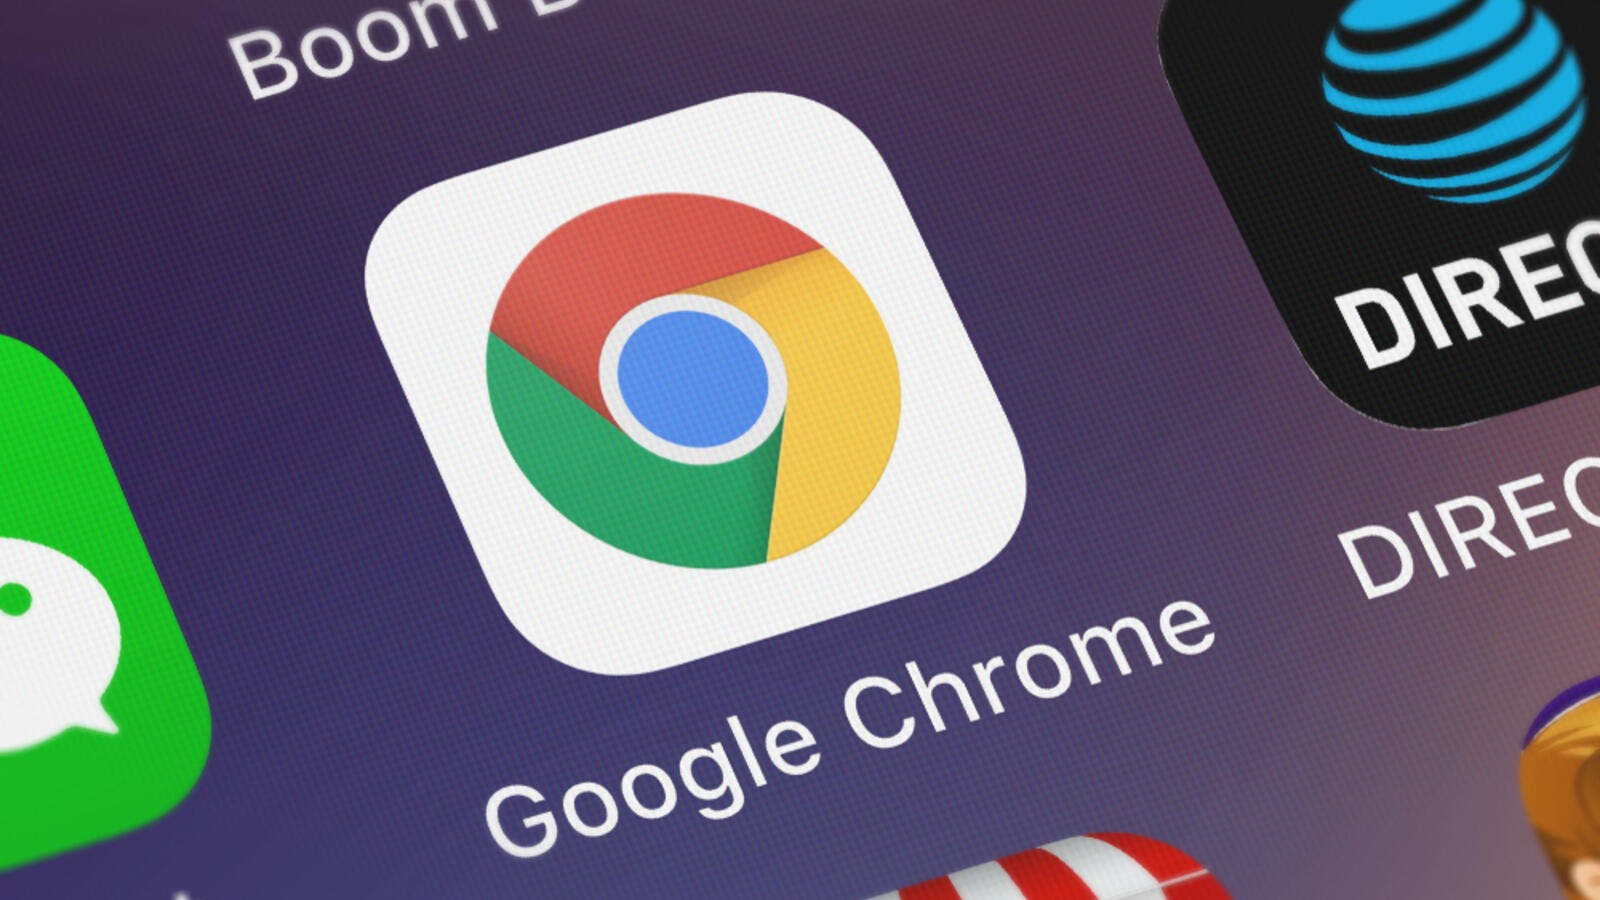 Google said that hijackers attempt to sign-in to sites across the web with every credential exposed by a third-party breach.